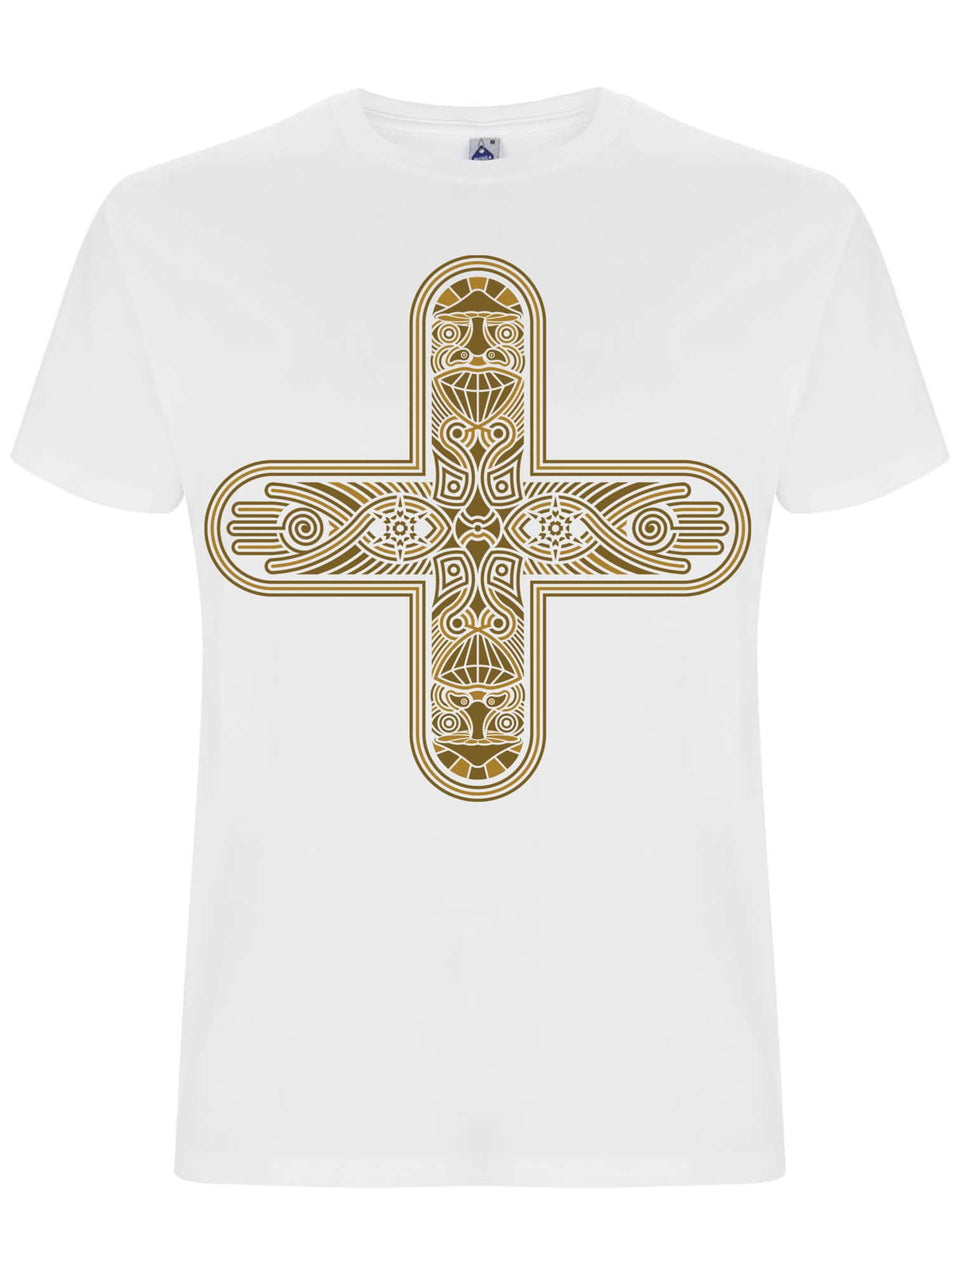 Decross Made To Order Men T-Shirt - White